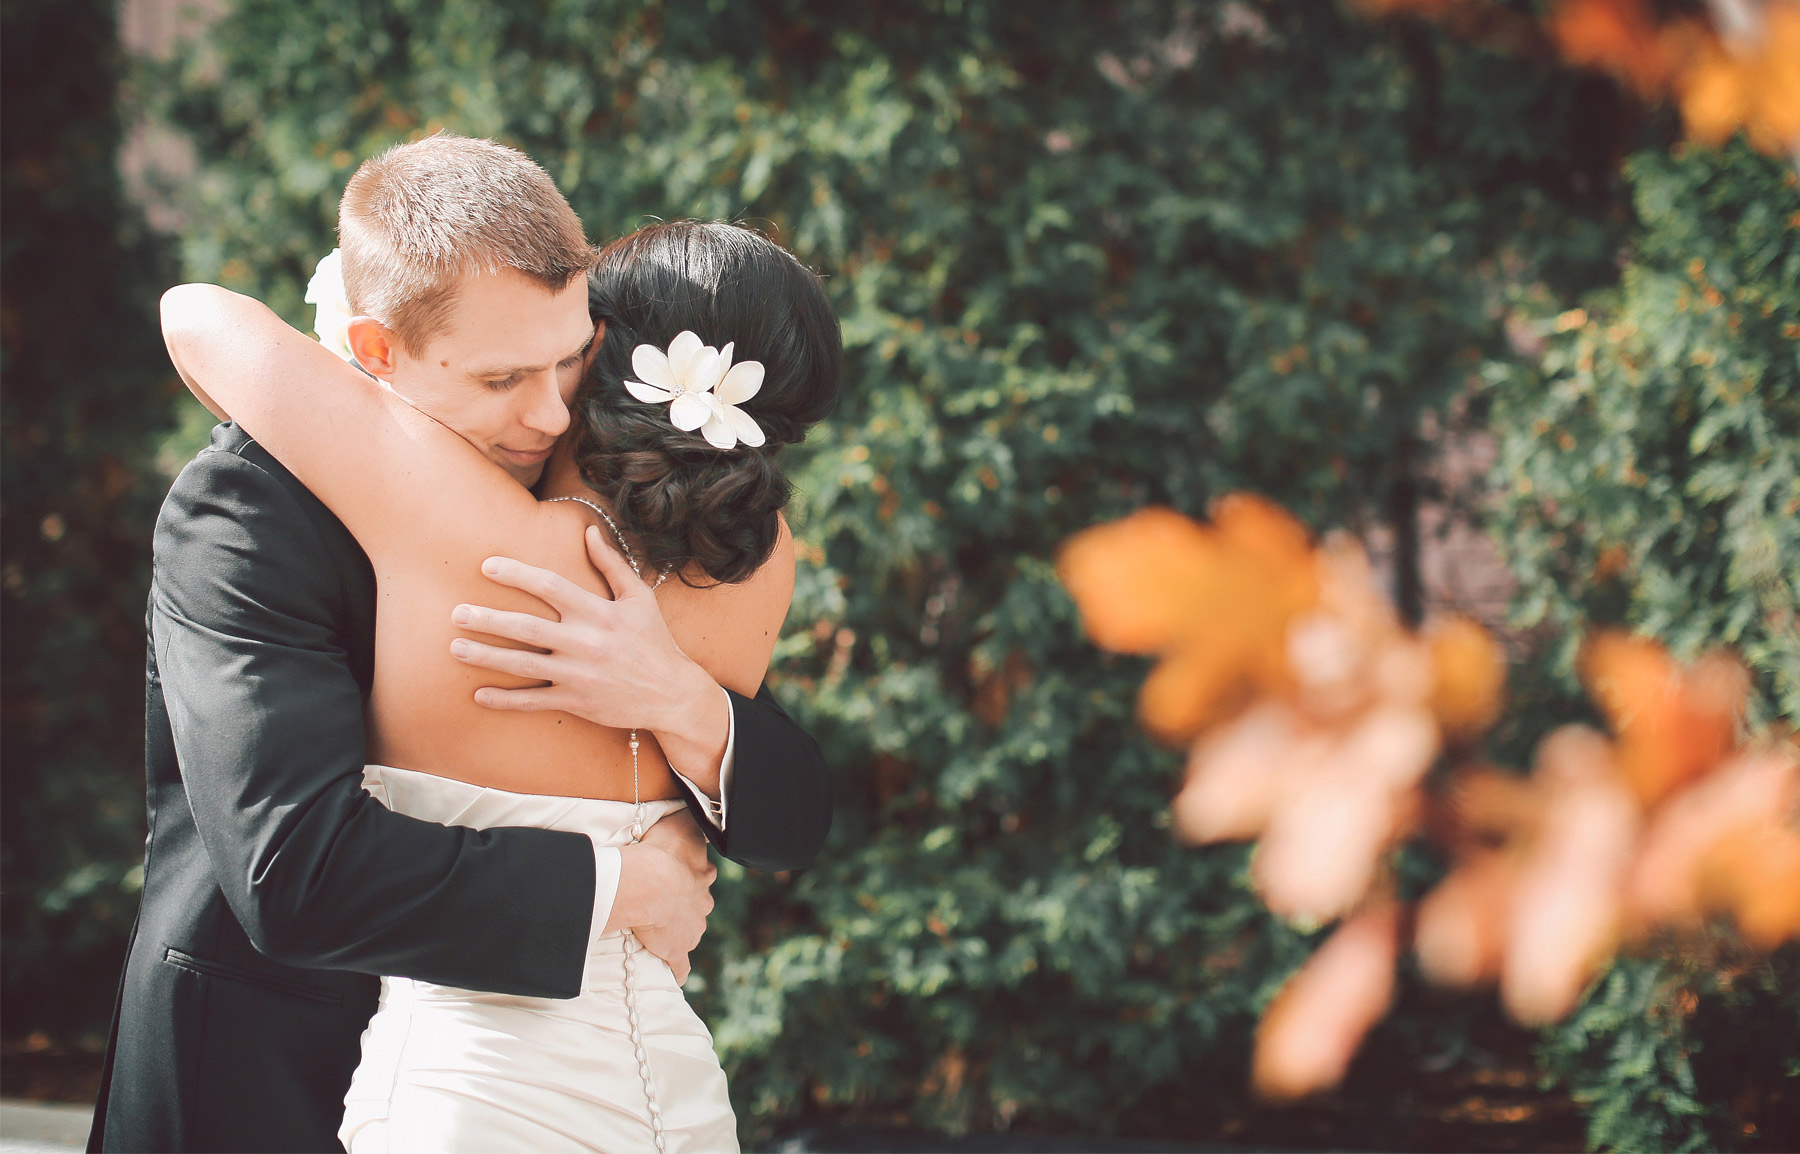 07-Minneapolis-Minnesota-Wedding-Photographer-by-Andrew-Vick-Photography-Fall-Autumn-Millennium-Hotel-First-Look-Meeting-Bride-Groom-Hug-Embrace-Vintage-Amanda-and-Cary.jpg